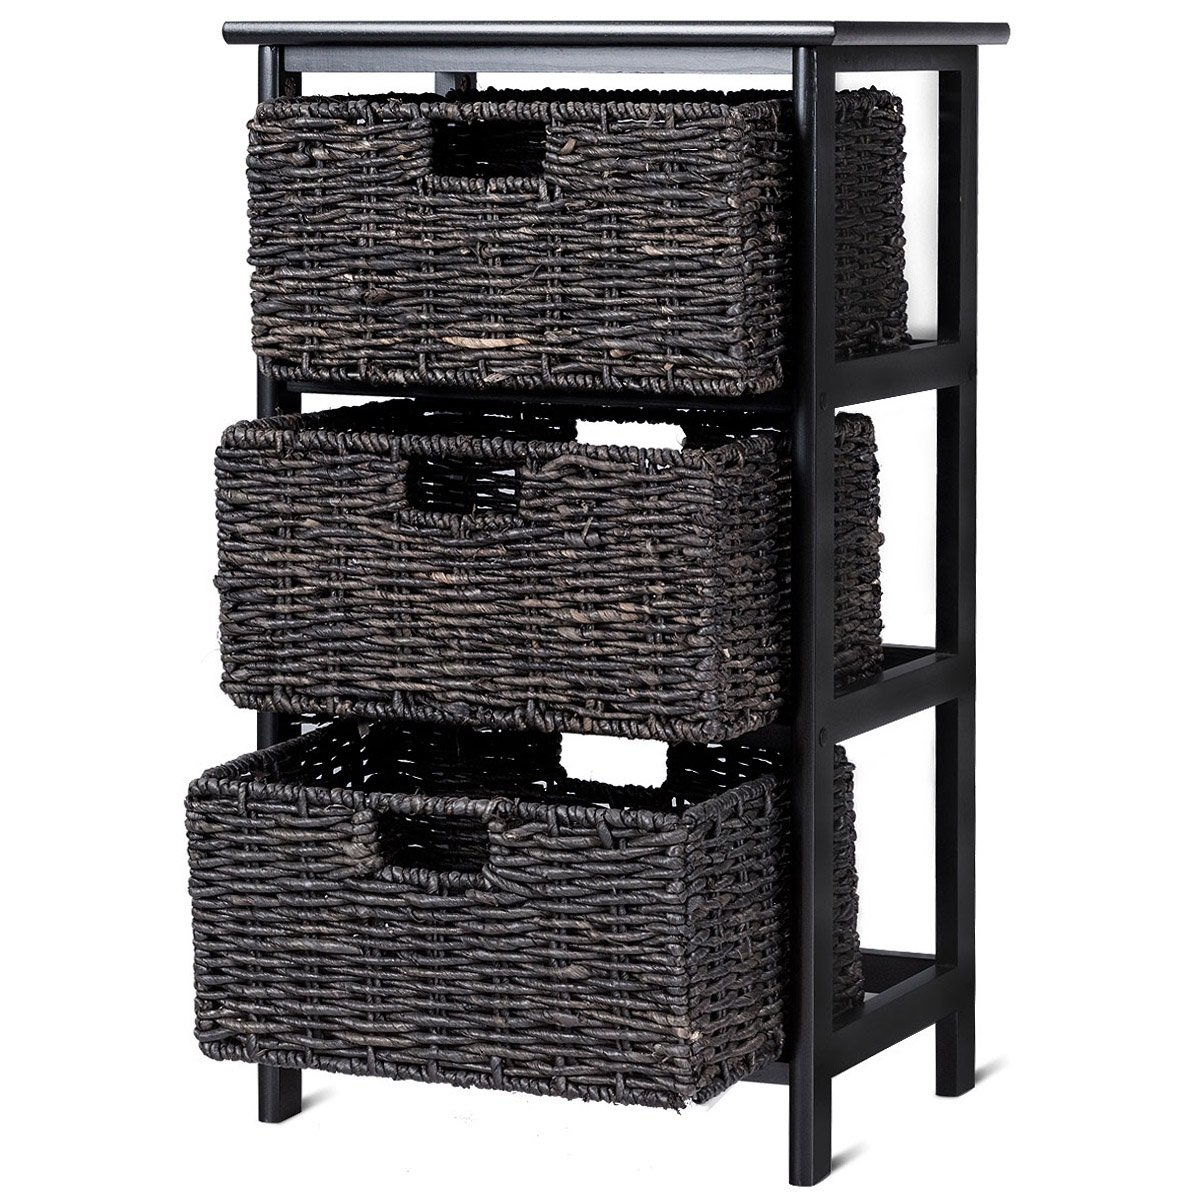 way wooden end accent storage table home office furniture decor baskets with black free shipping today lawn and patio wicker porch outdoor coffee cover small sofa mid century tall